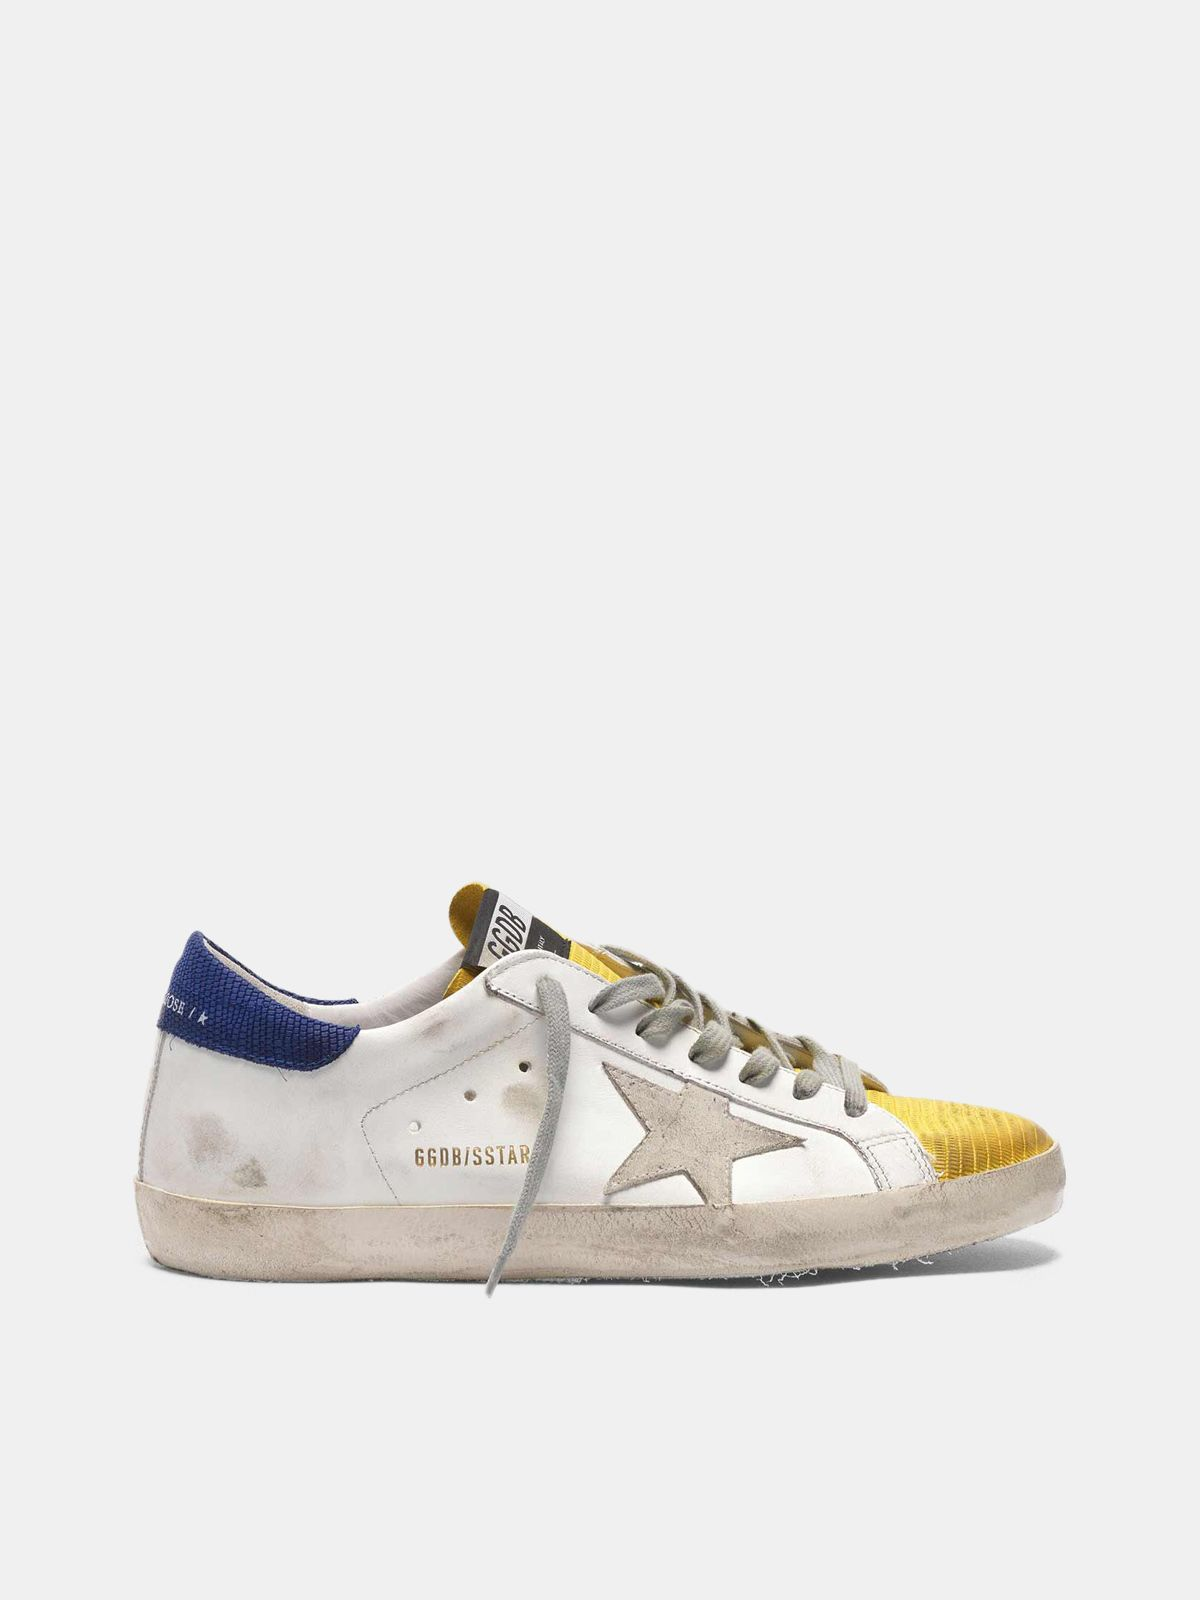 Two-tone Super-Star sneakers with yellow lizard-print insert